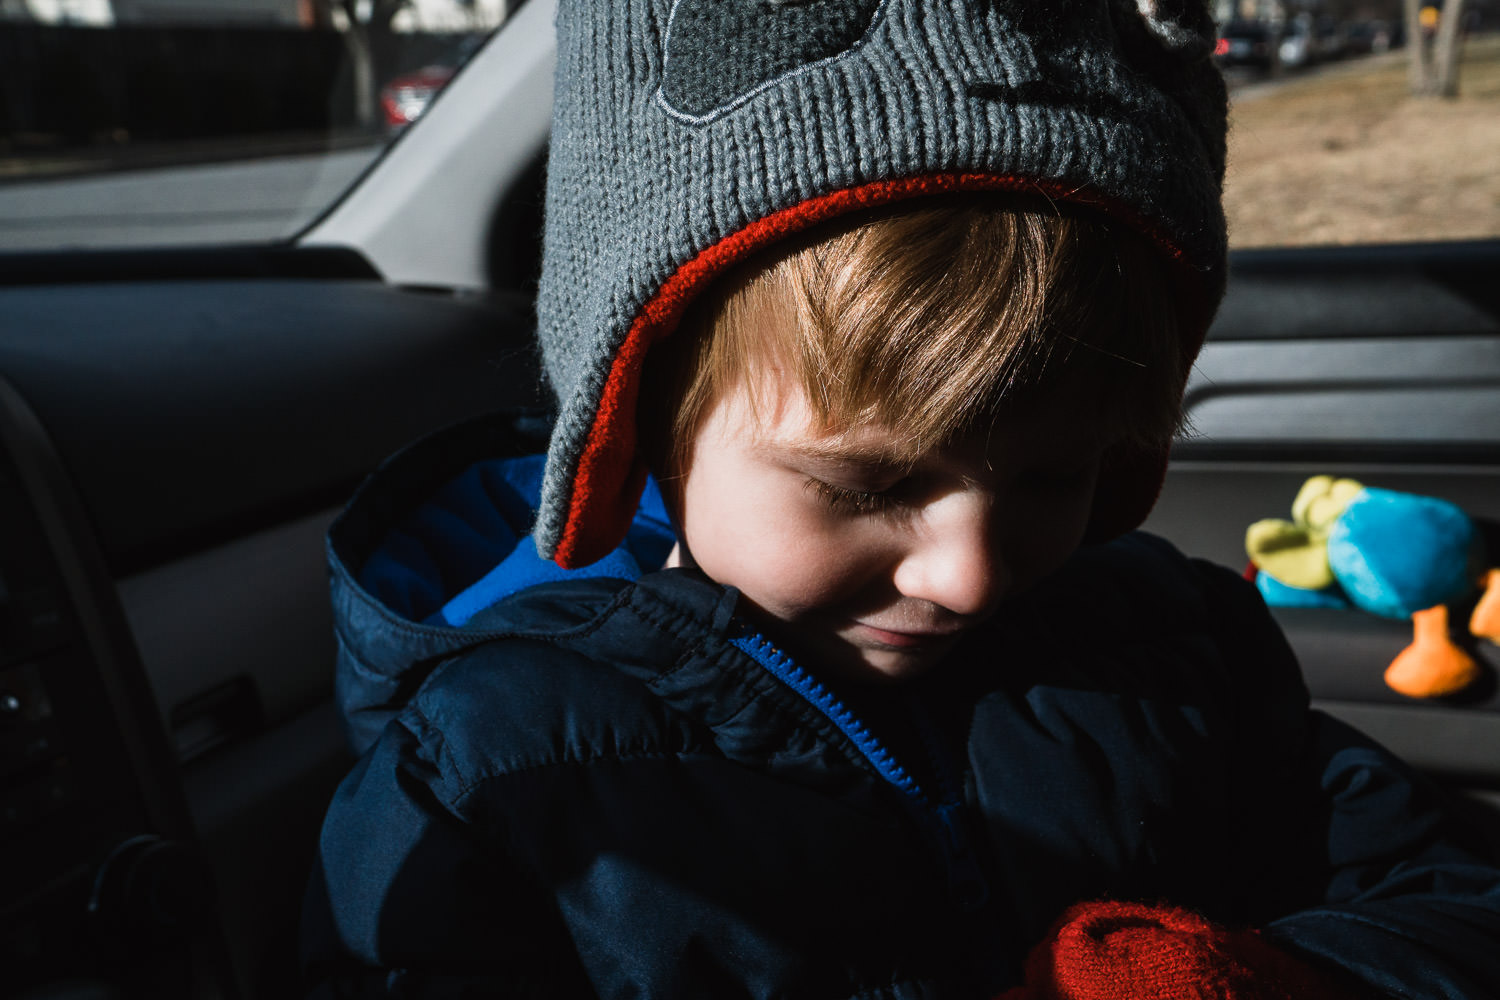 A little boy sits in the front seat of a parked car.